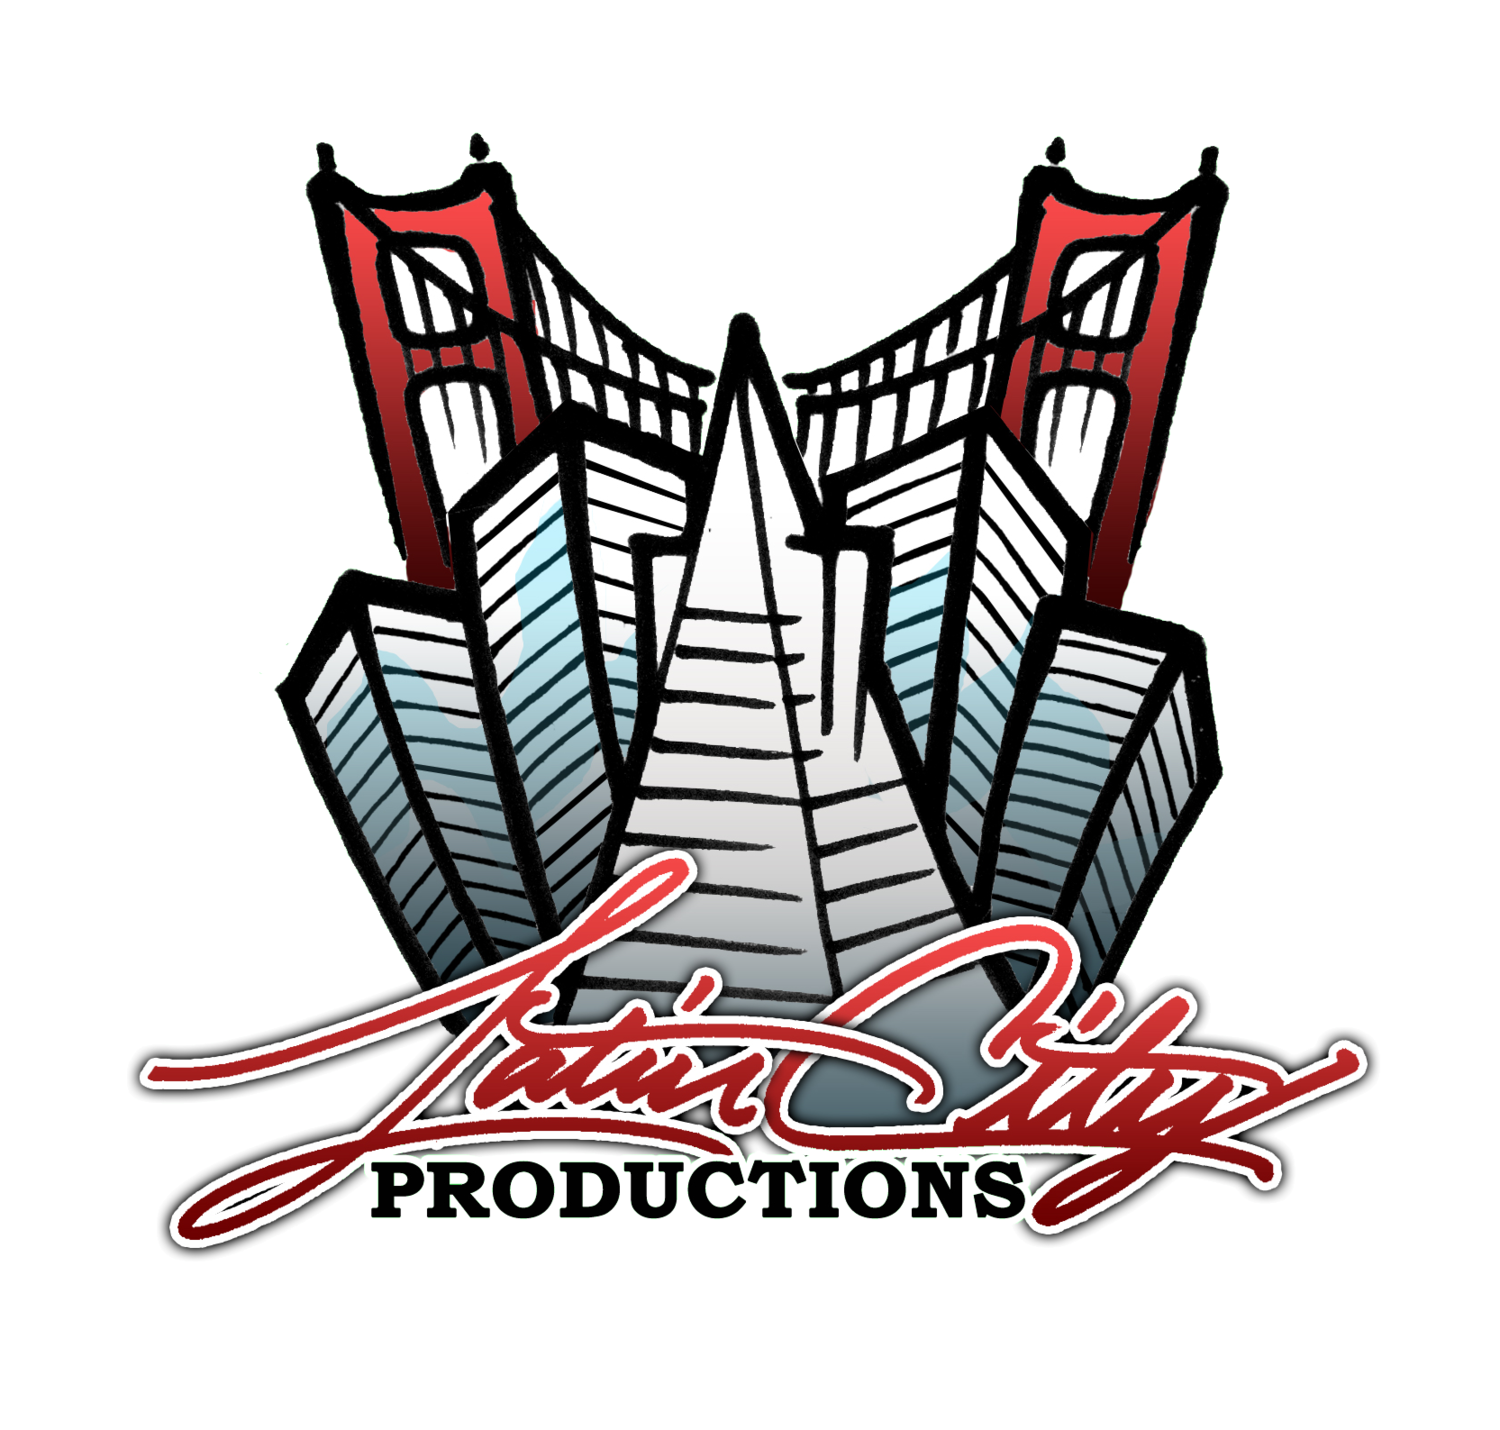 Latin City Productions